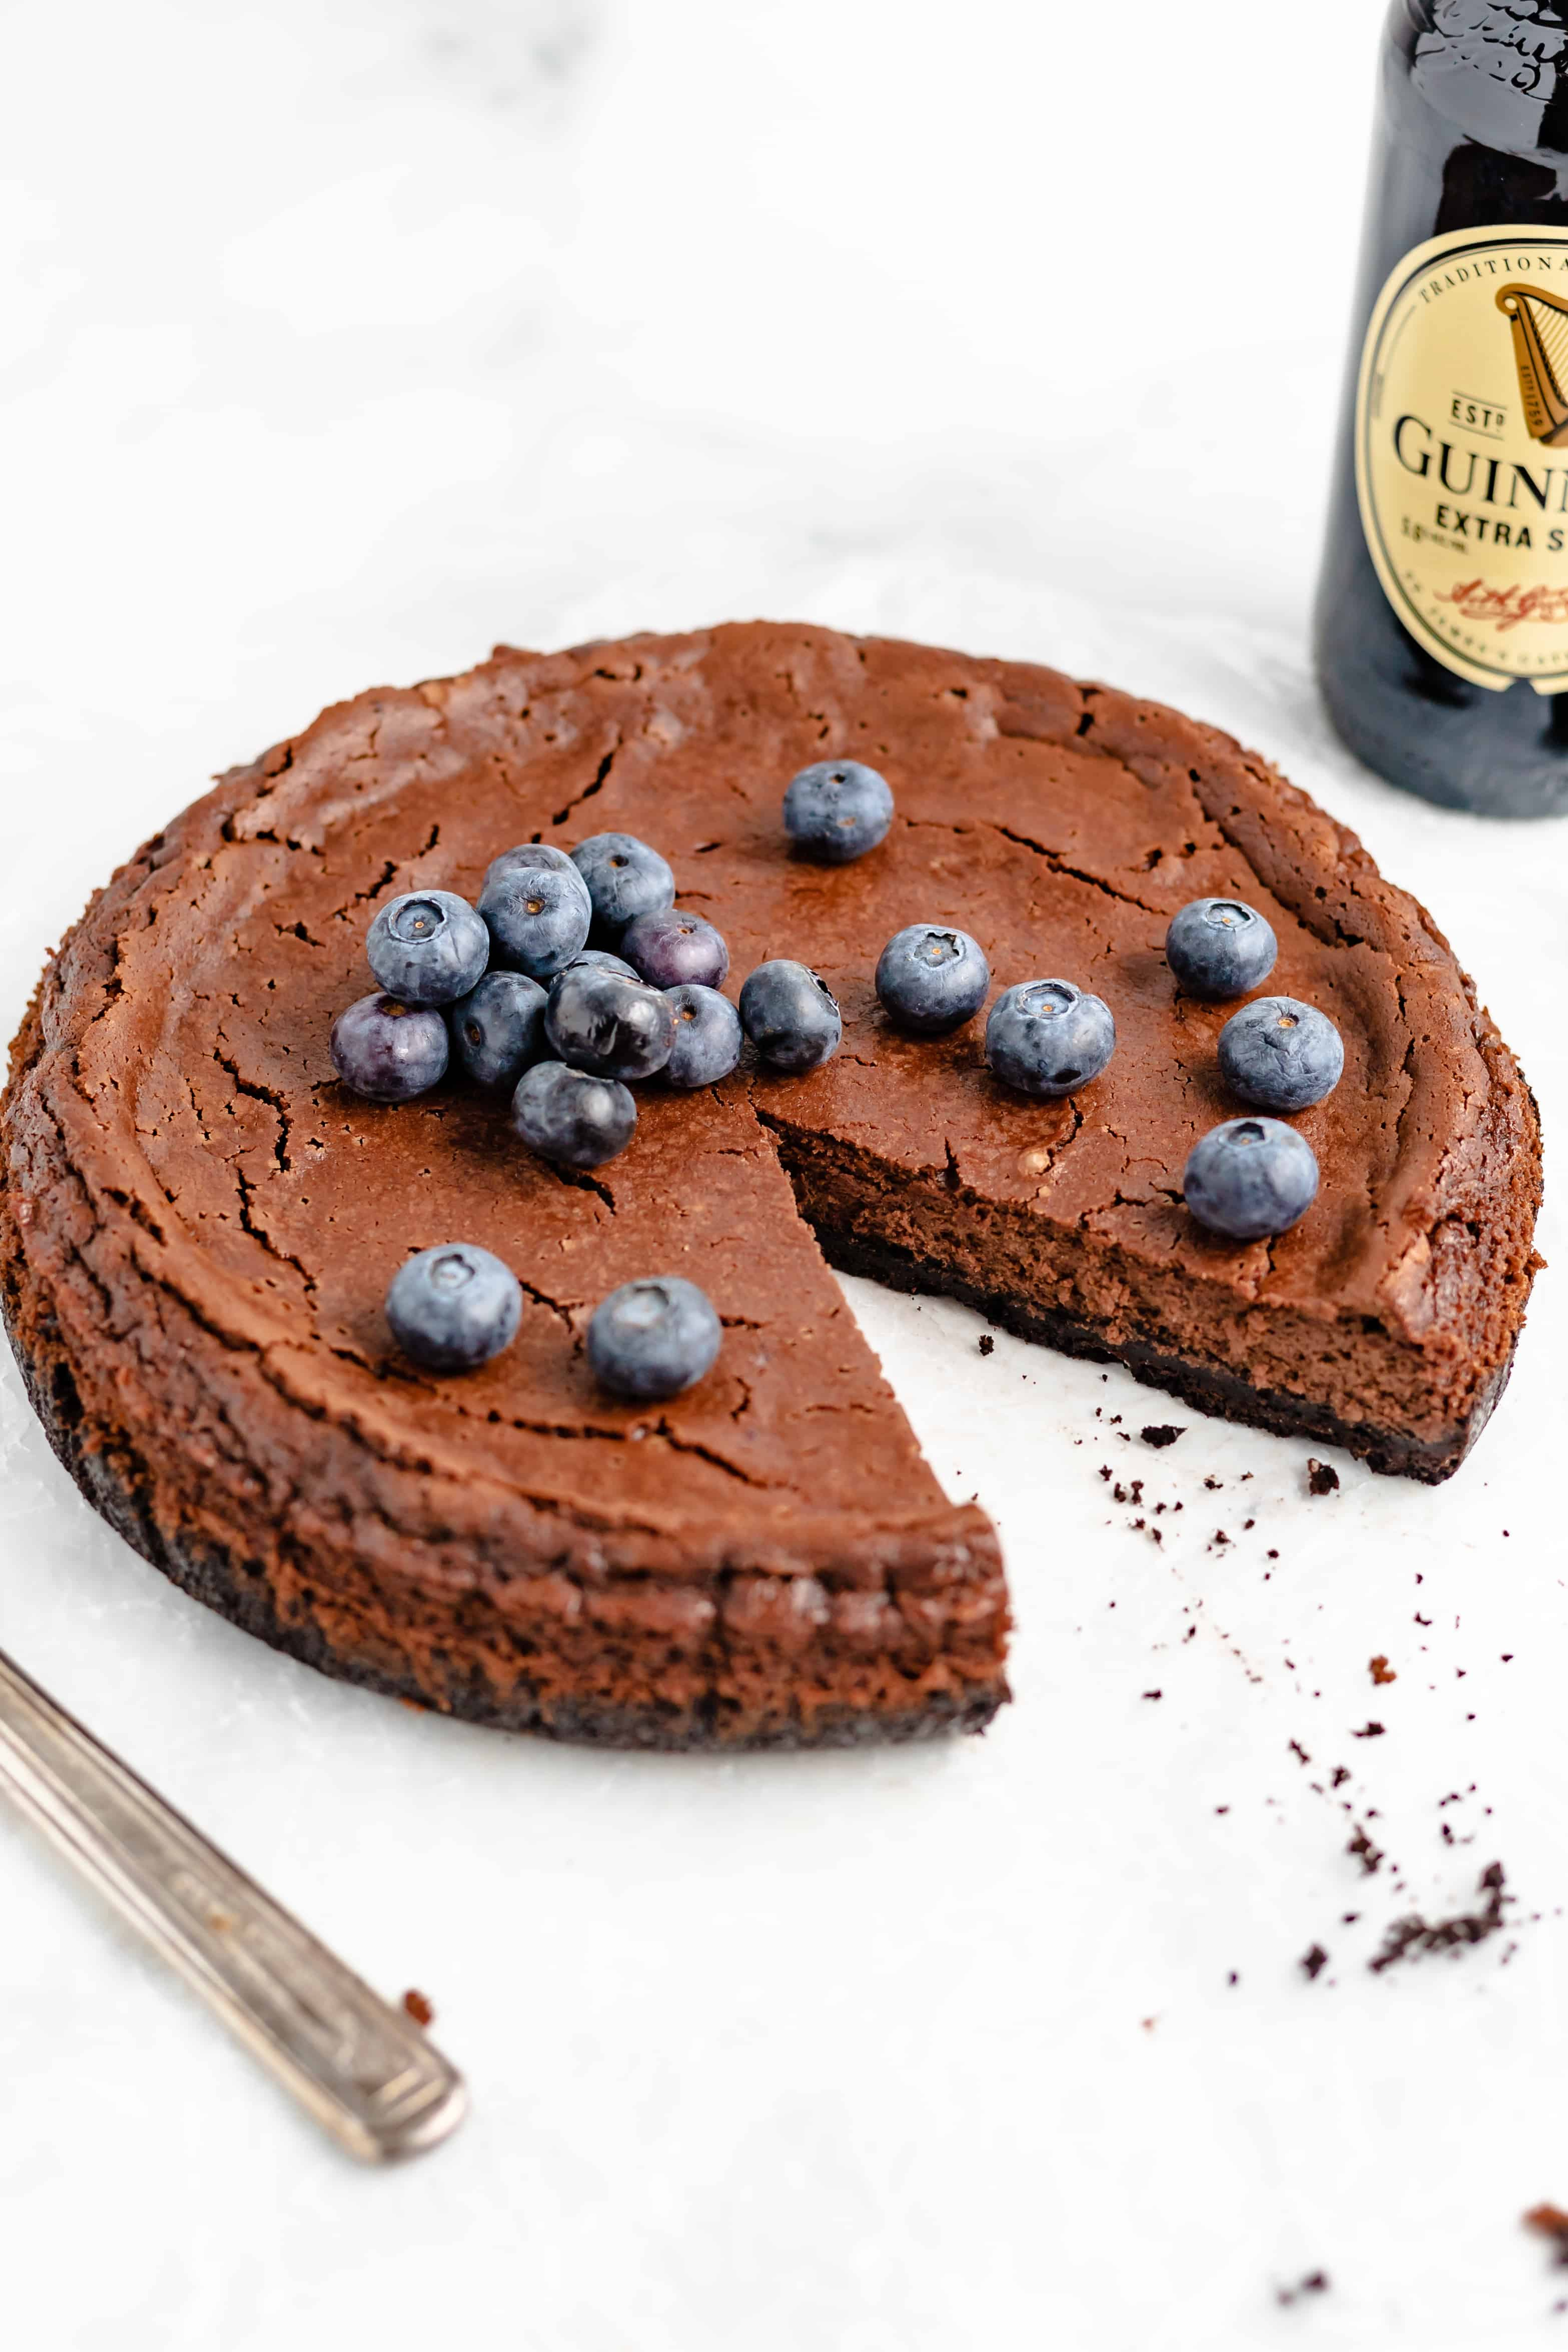 Chocolate cheesecake with a twist - Guiness stout enhances the chocolate flavor!